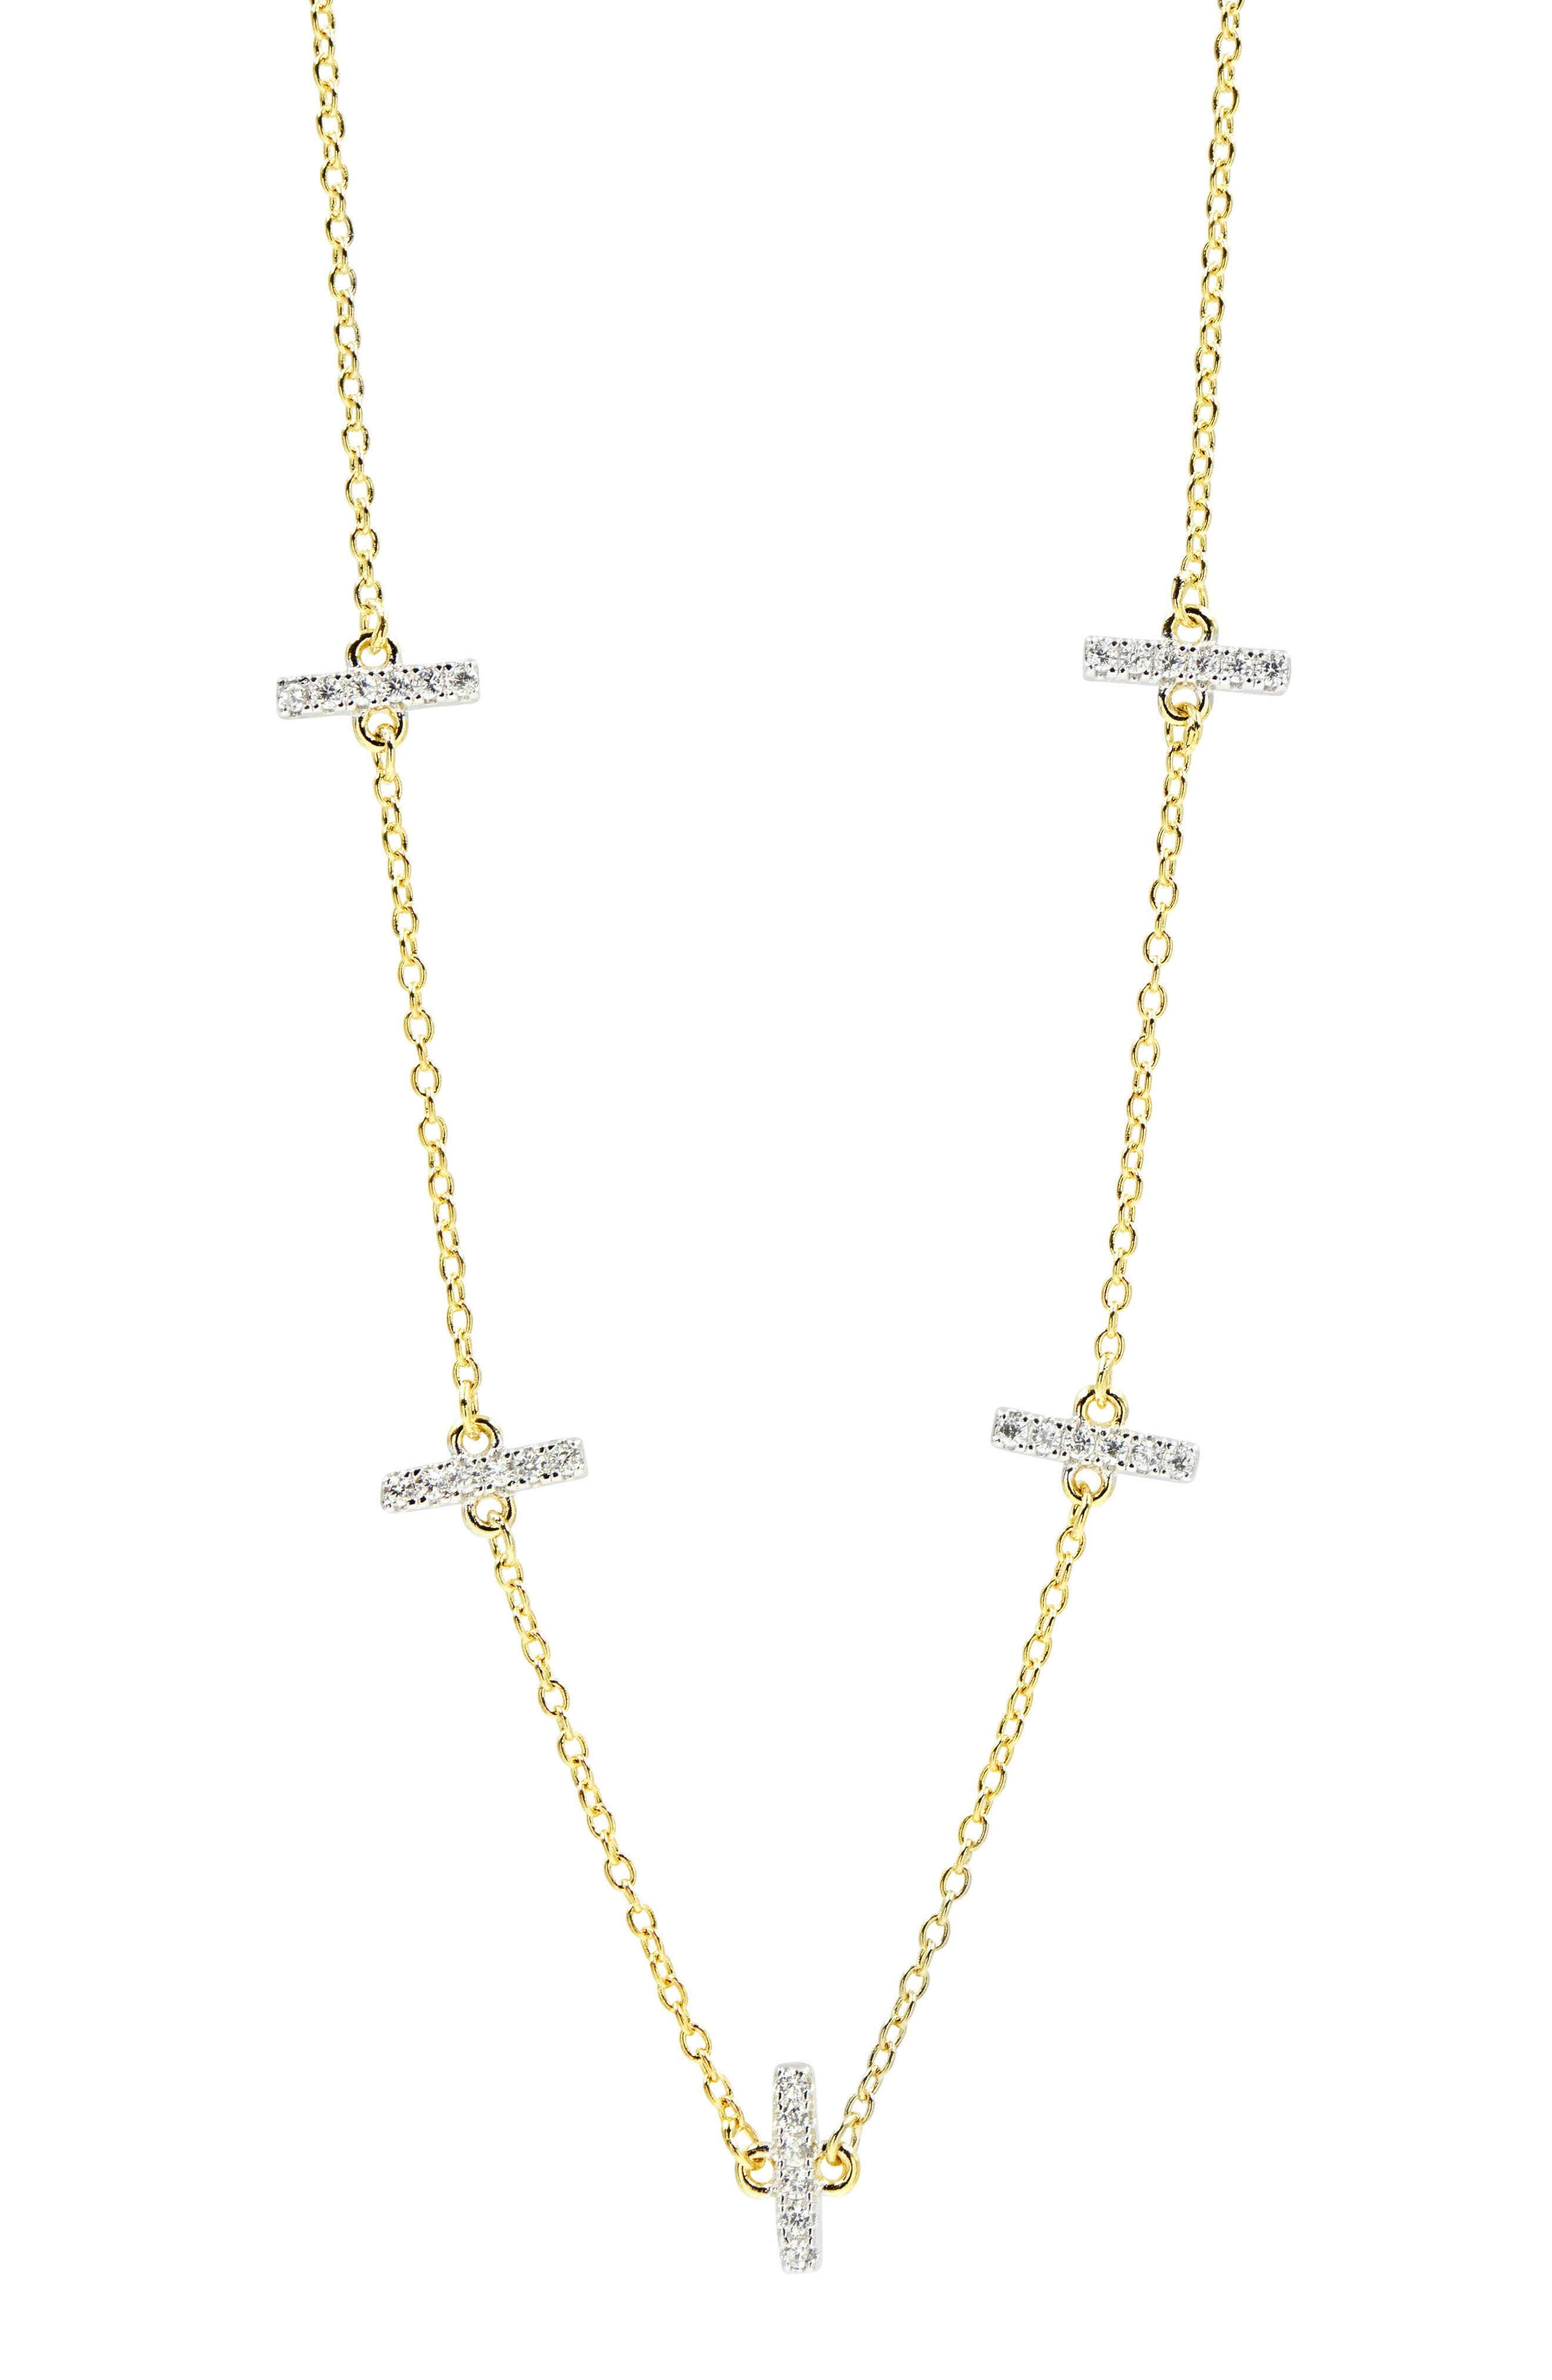 Freida Rothman Jewelry RADIANCE CRYSTAL STATION NECKLACE